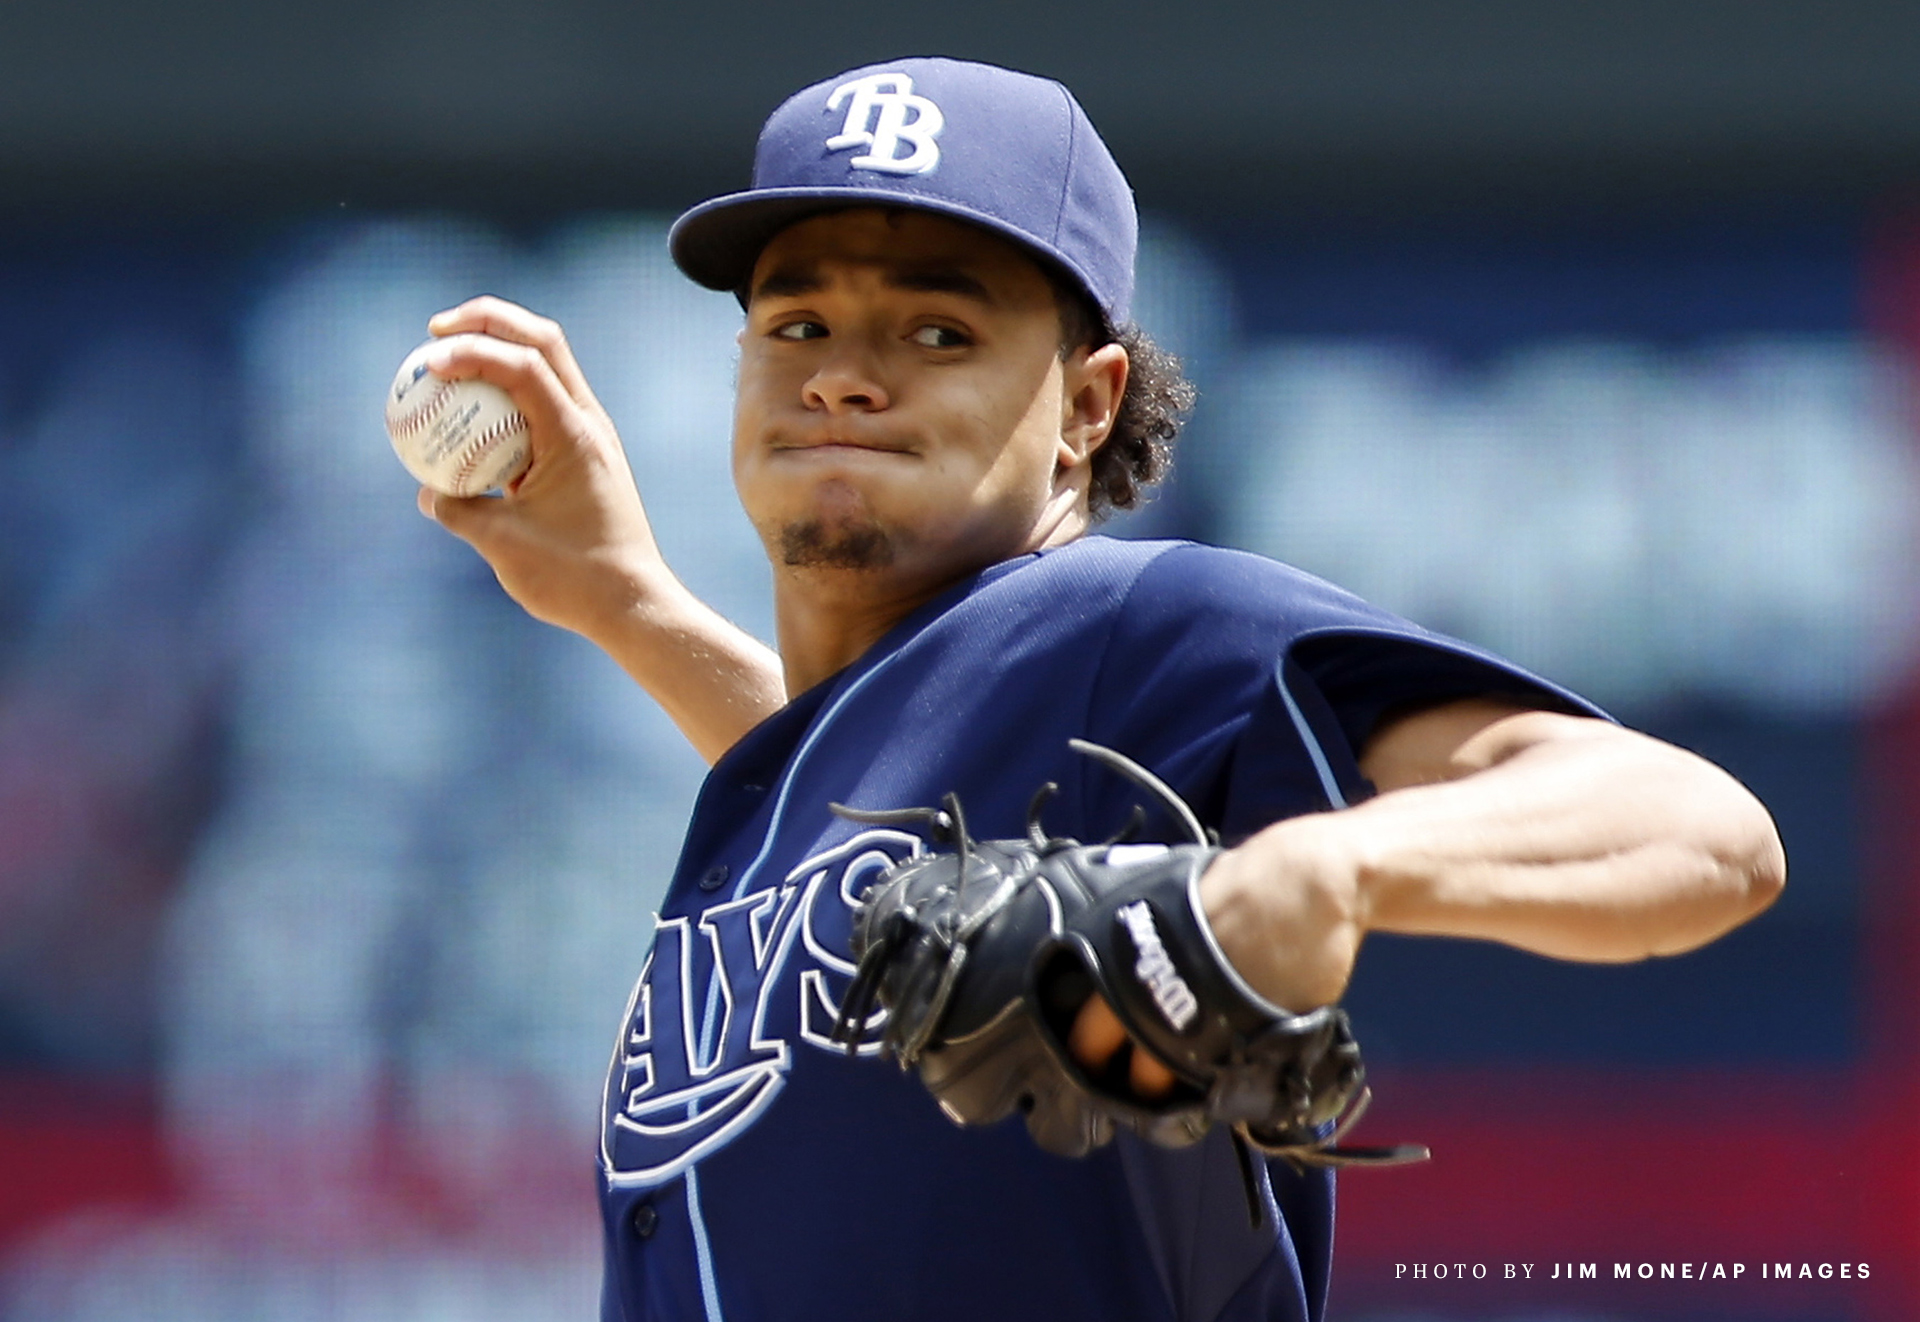 Tampa Bay Rays pitcher Chris Archer throws against the Minnesota Twins in the first inning of a baseball game, Sunday, May 17, 2015, in Minneapolis. (AP Photo/Jim Mone)